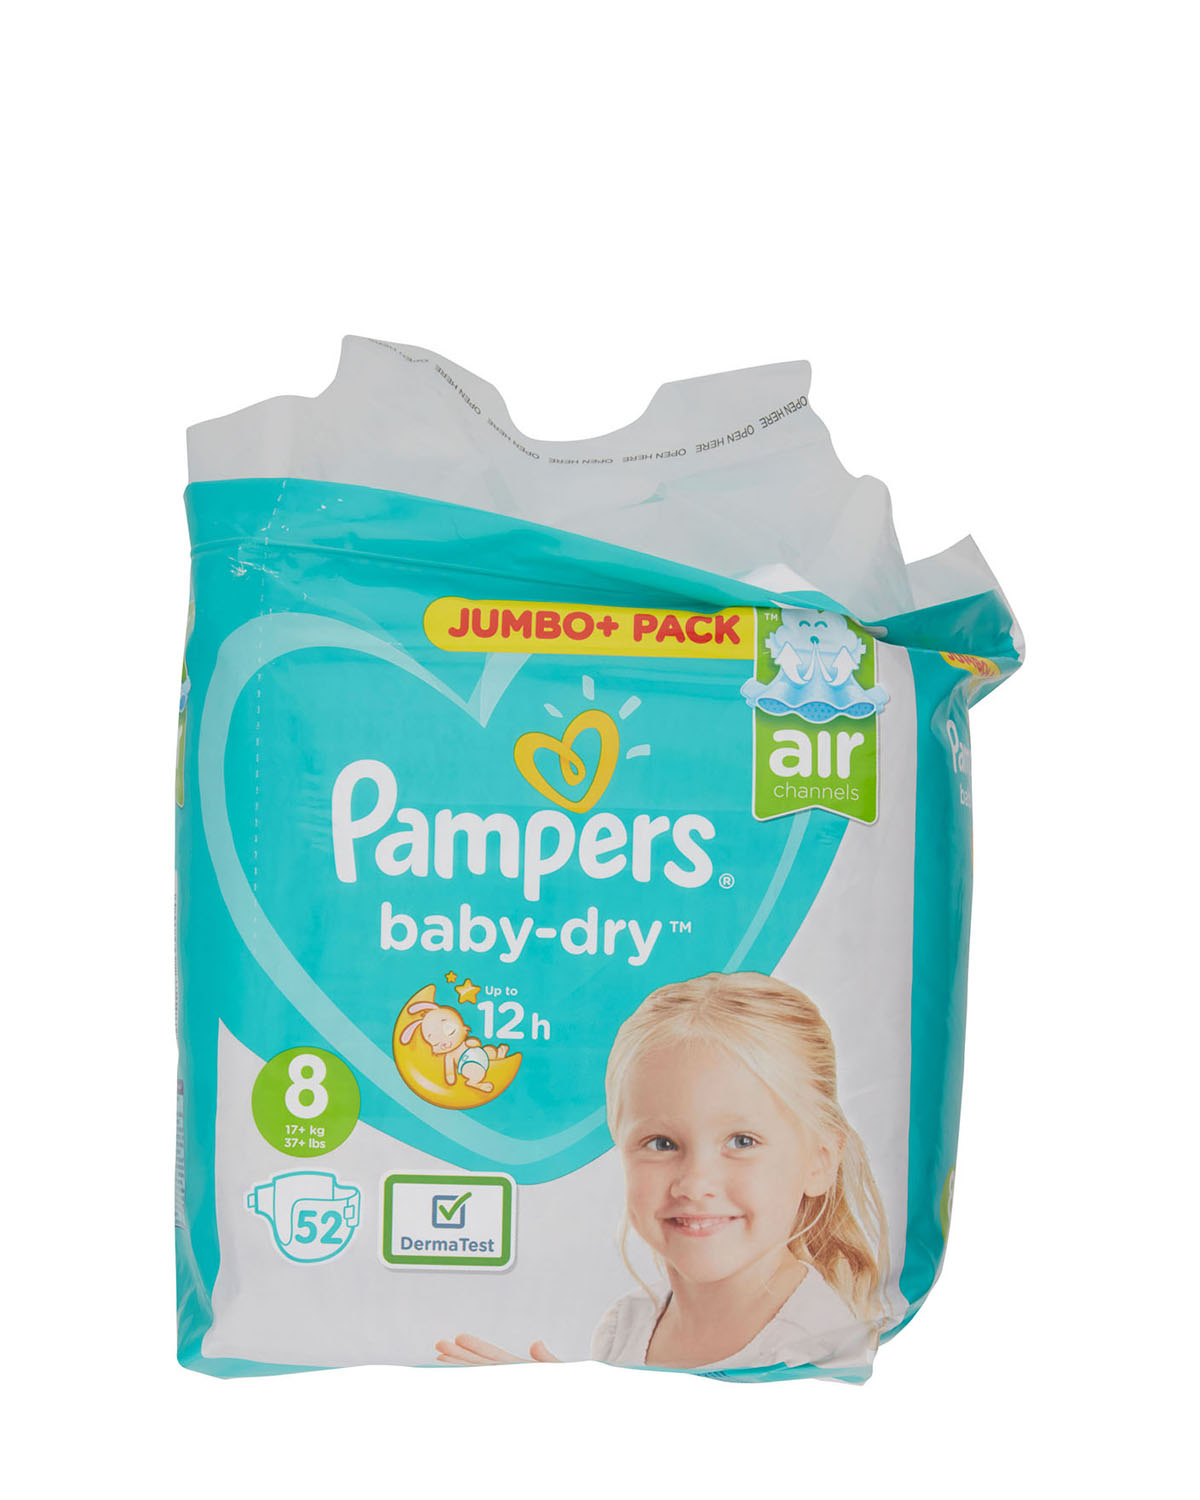 Pampers Baby Dry Size 8 Jumbo Plus - 52 Nappies